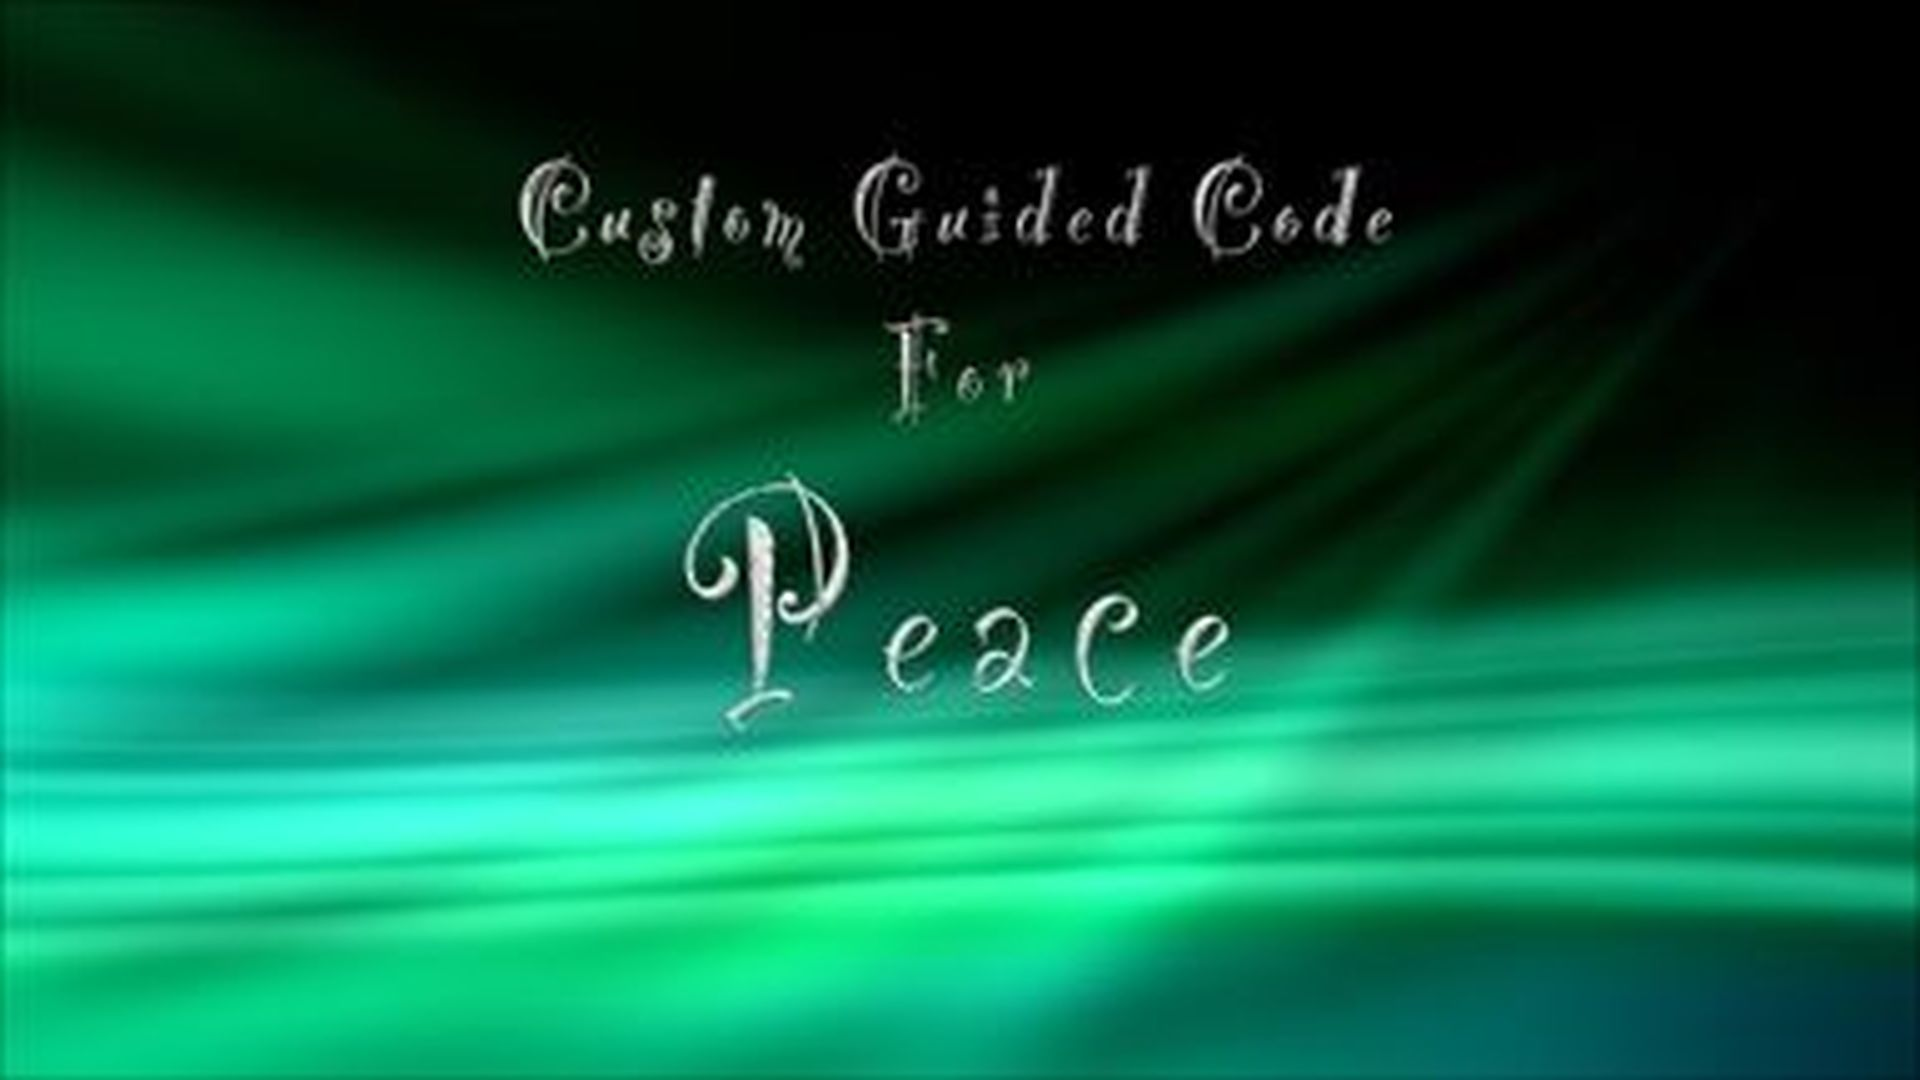 Custom Guided Code for Peace